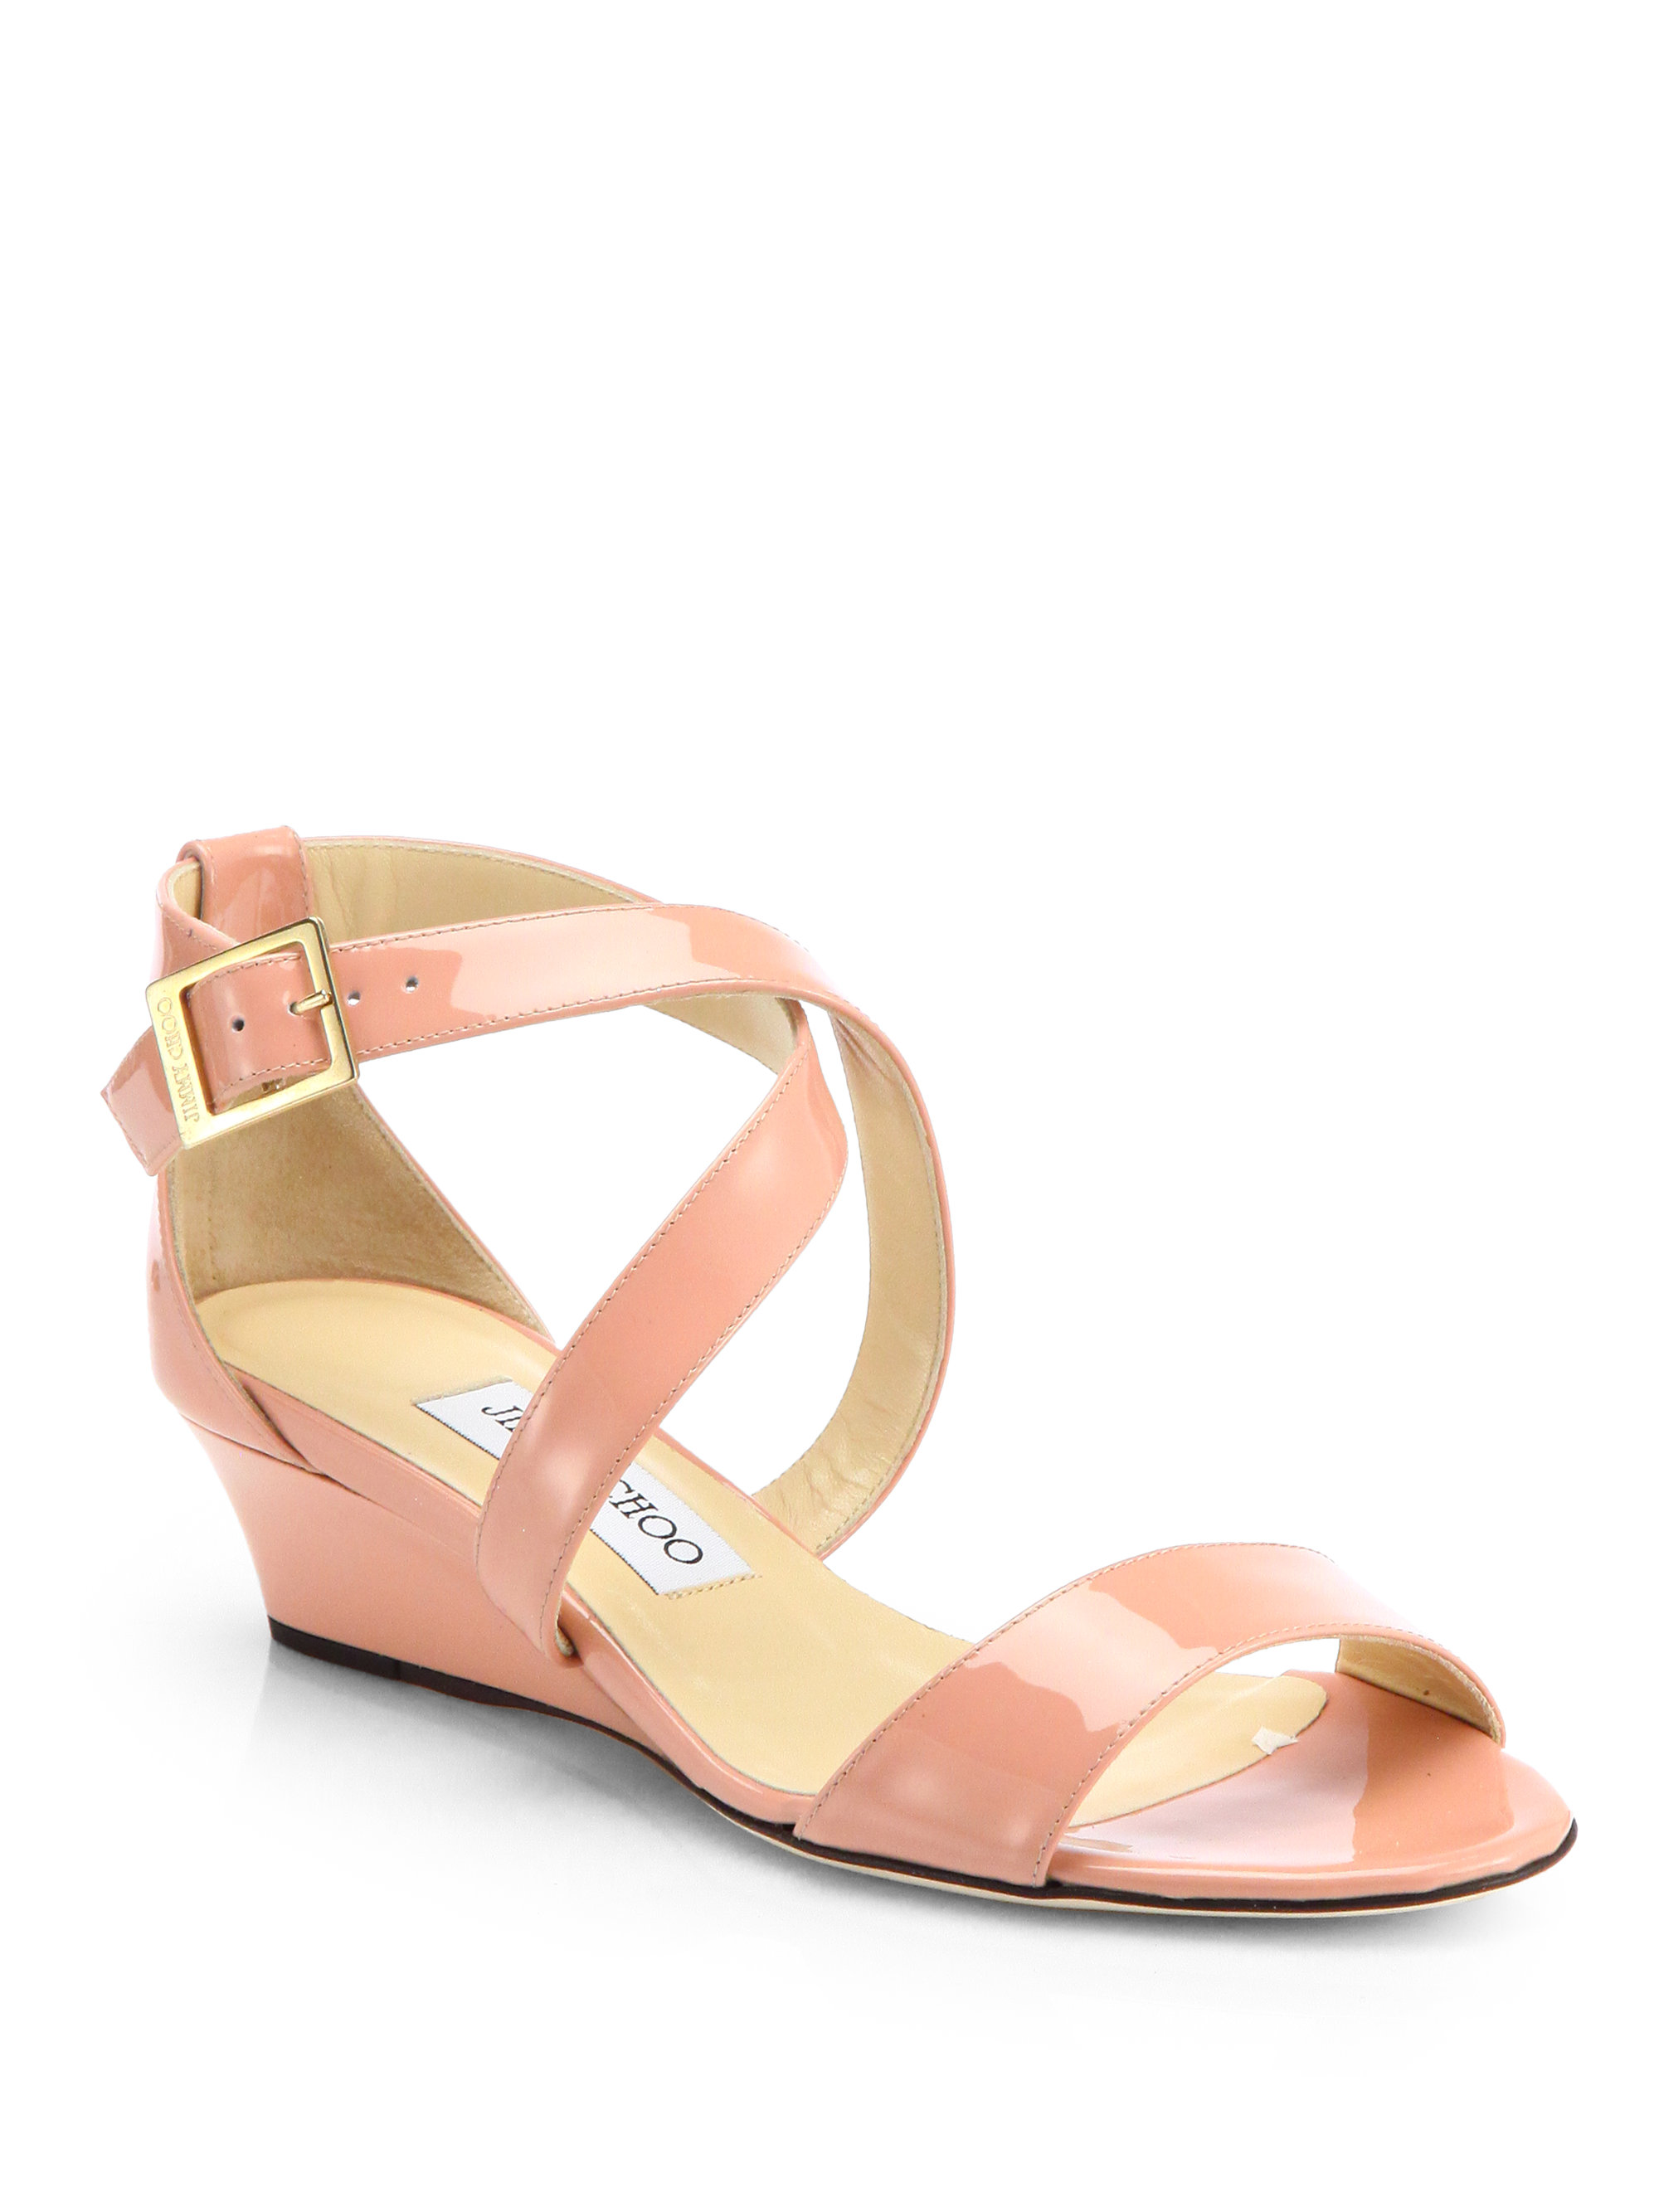 discount prices Jimmy Choo Patent Leather Wedge Sandals sale affordable sneakernews for sale aoqkoA13B0